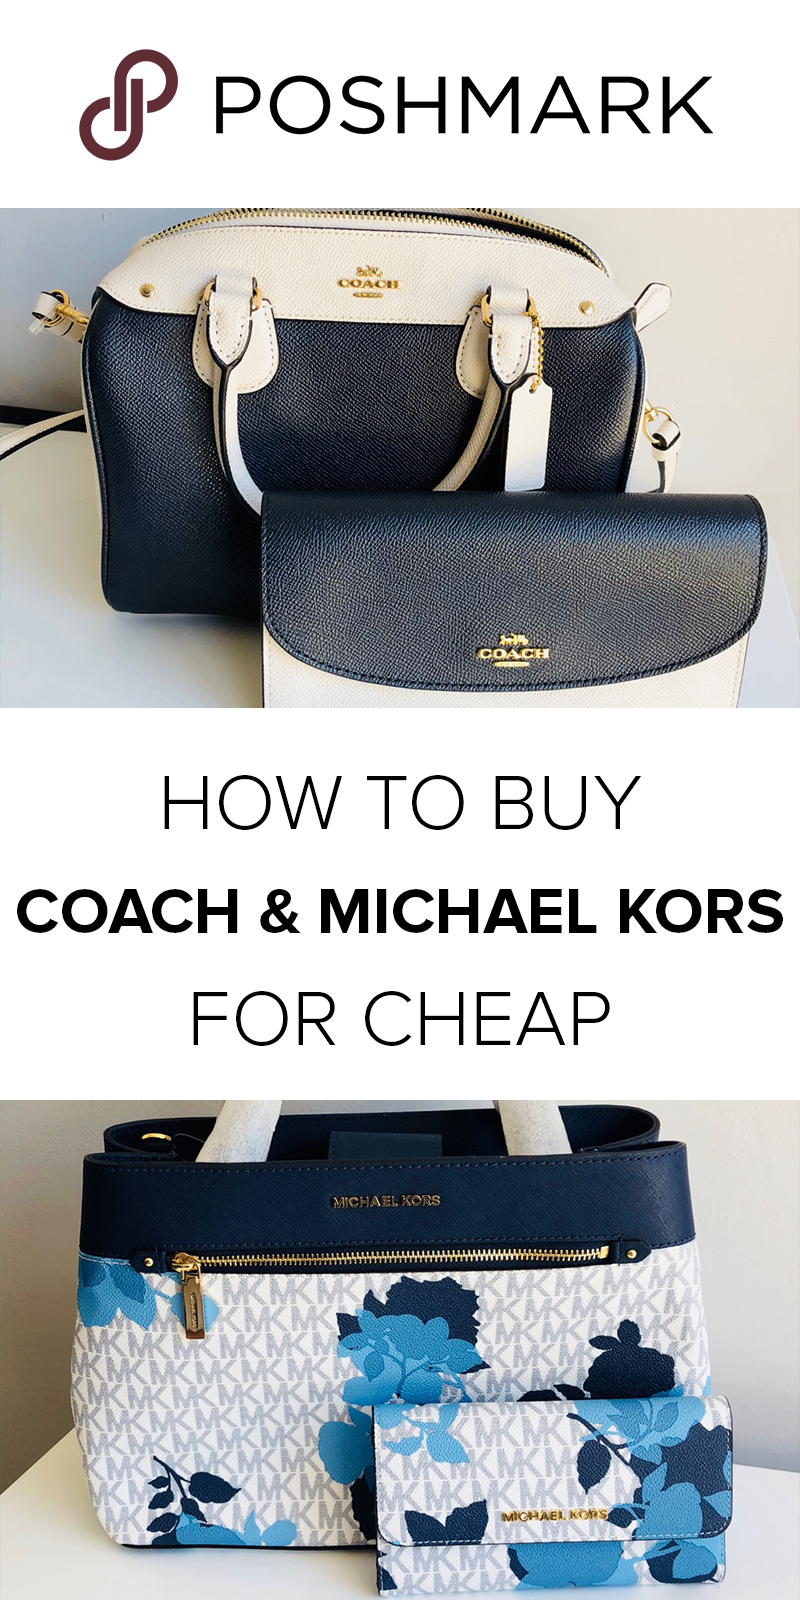 59be73de74d Get Coach   Michael Kors designer handbags for up to 70% off on Poshmark.  Download the app to shop!